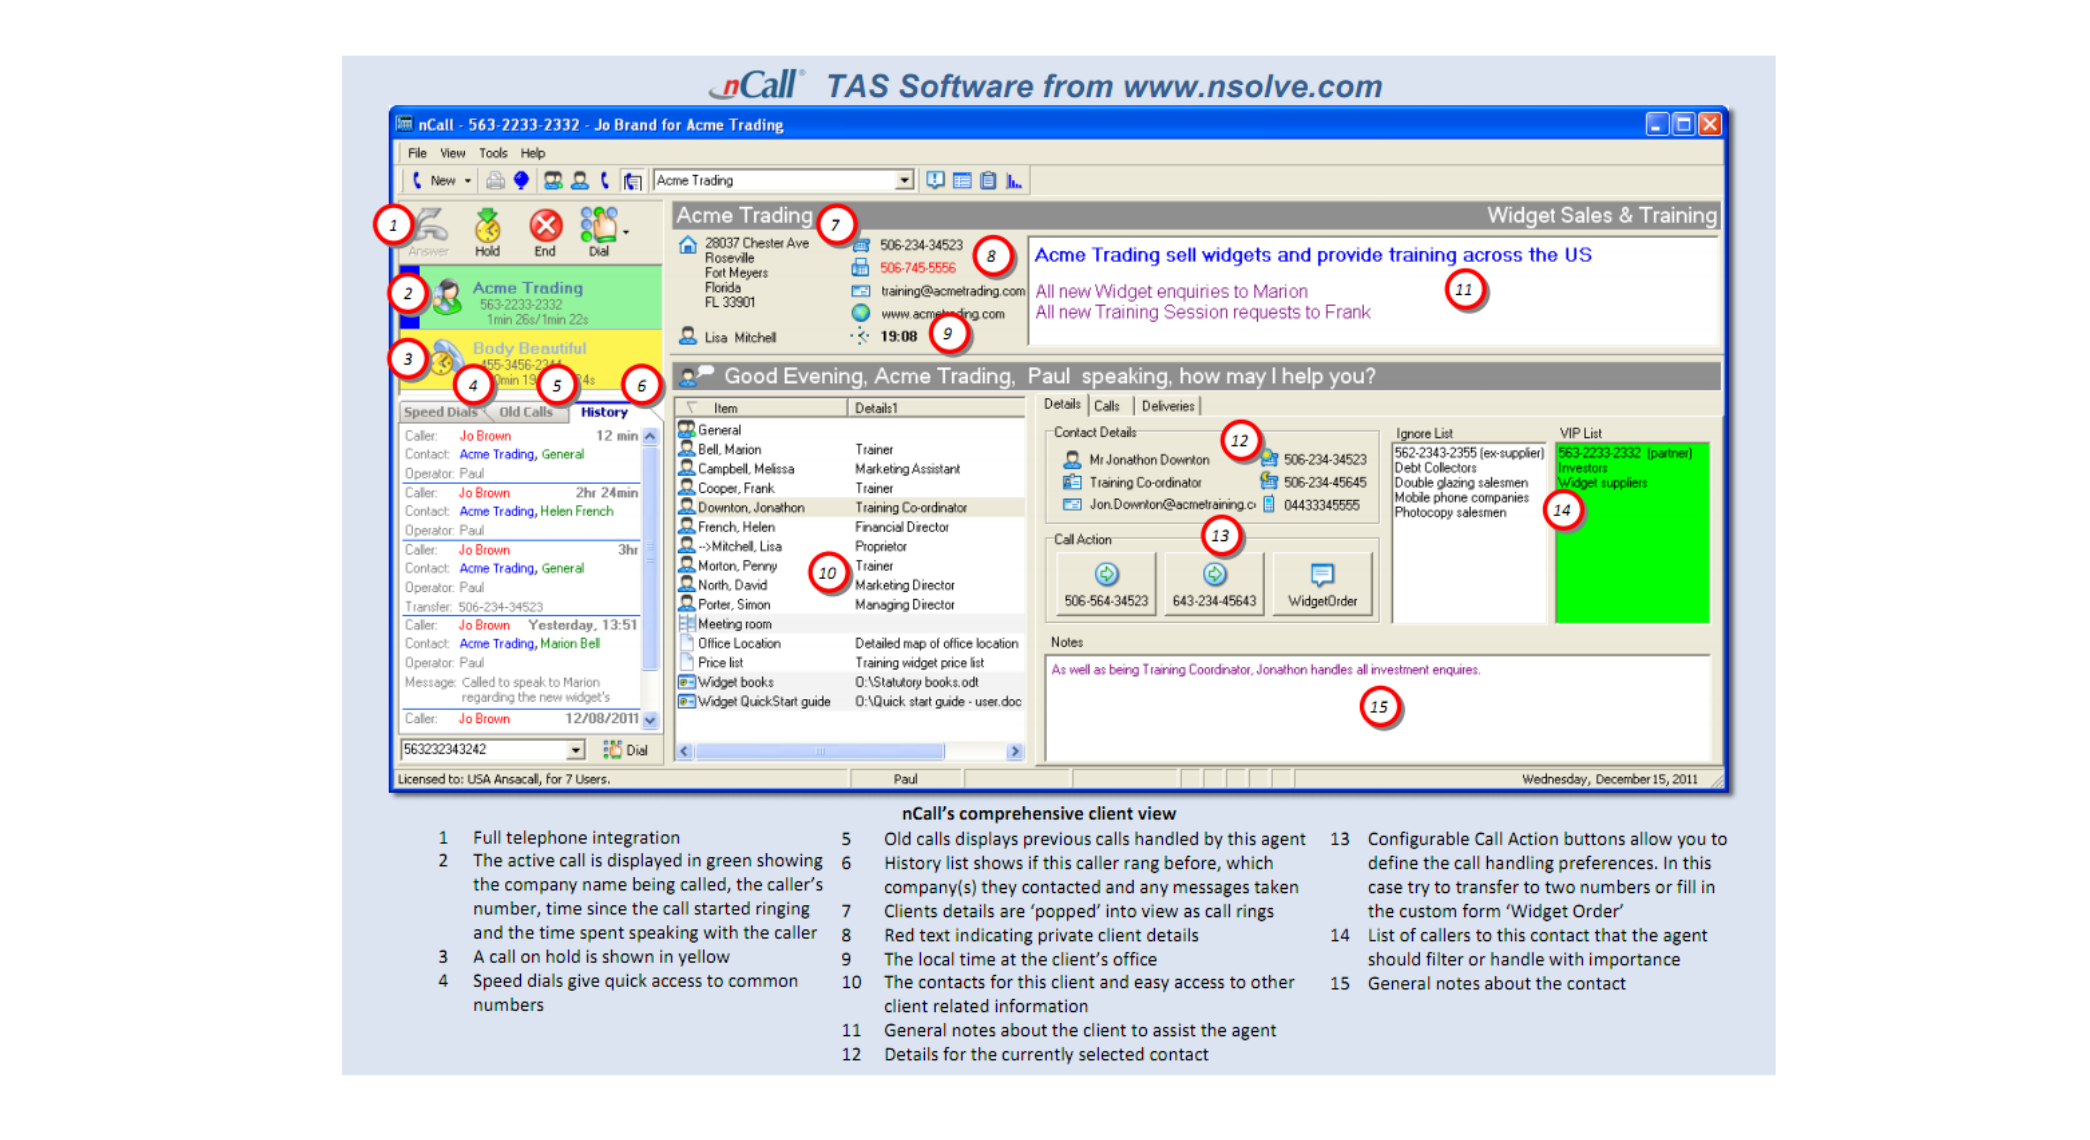 nCall Client View1